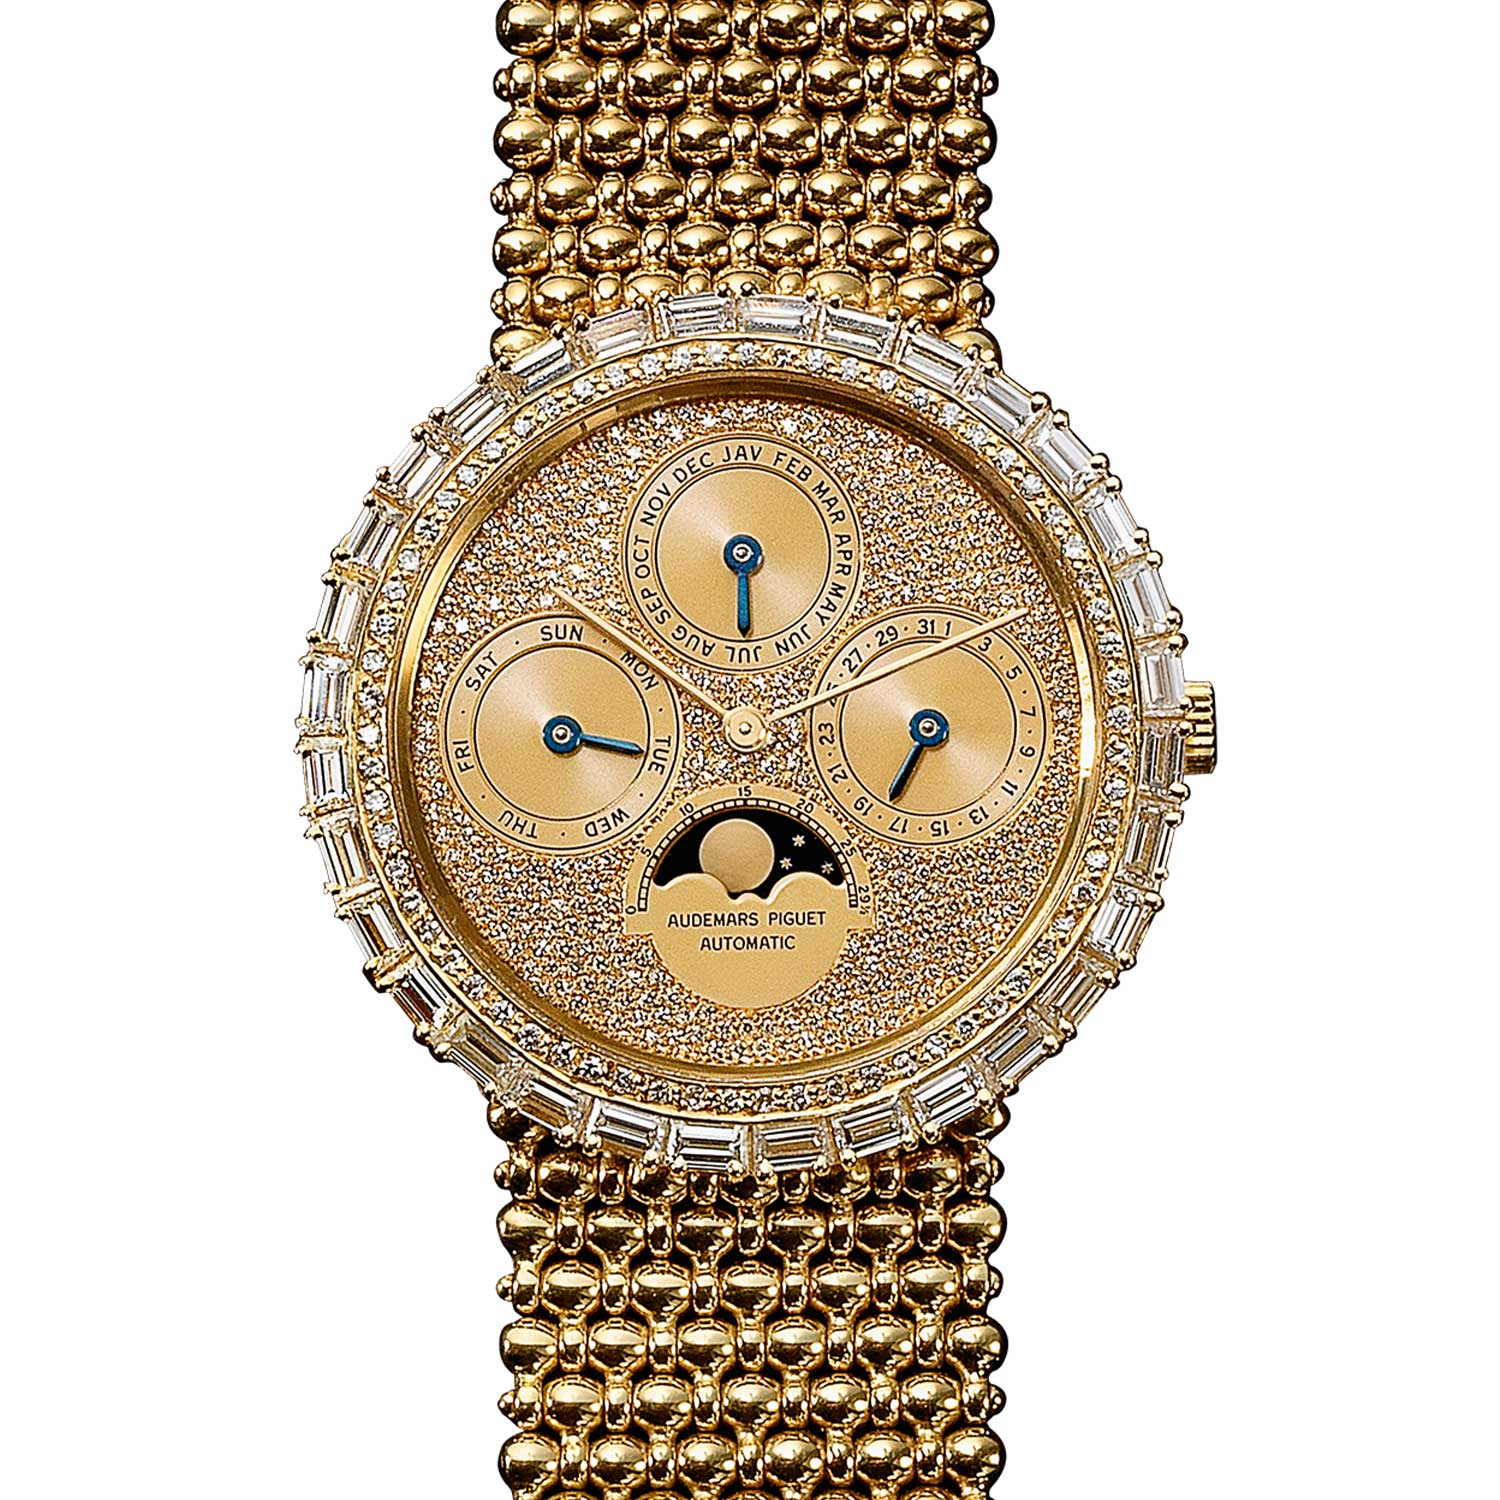 Perpetual calendar with a diamond-set dial. Model 5579BA (19 examples, of which 11 in yellow gold). Movement No 273833, case No C7027. Calibre 2120/2800. Movement made in1984, watch sold in 1985. Audemars Piguet Heritage Collection, Inv. 1377.